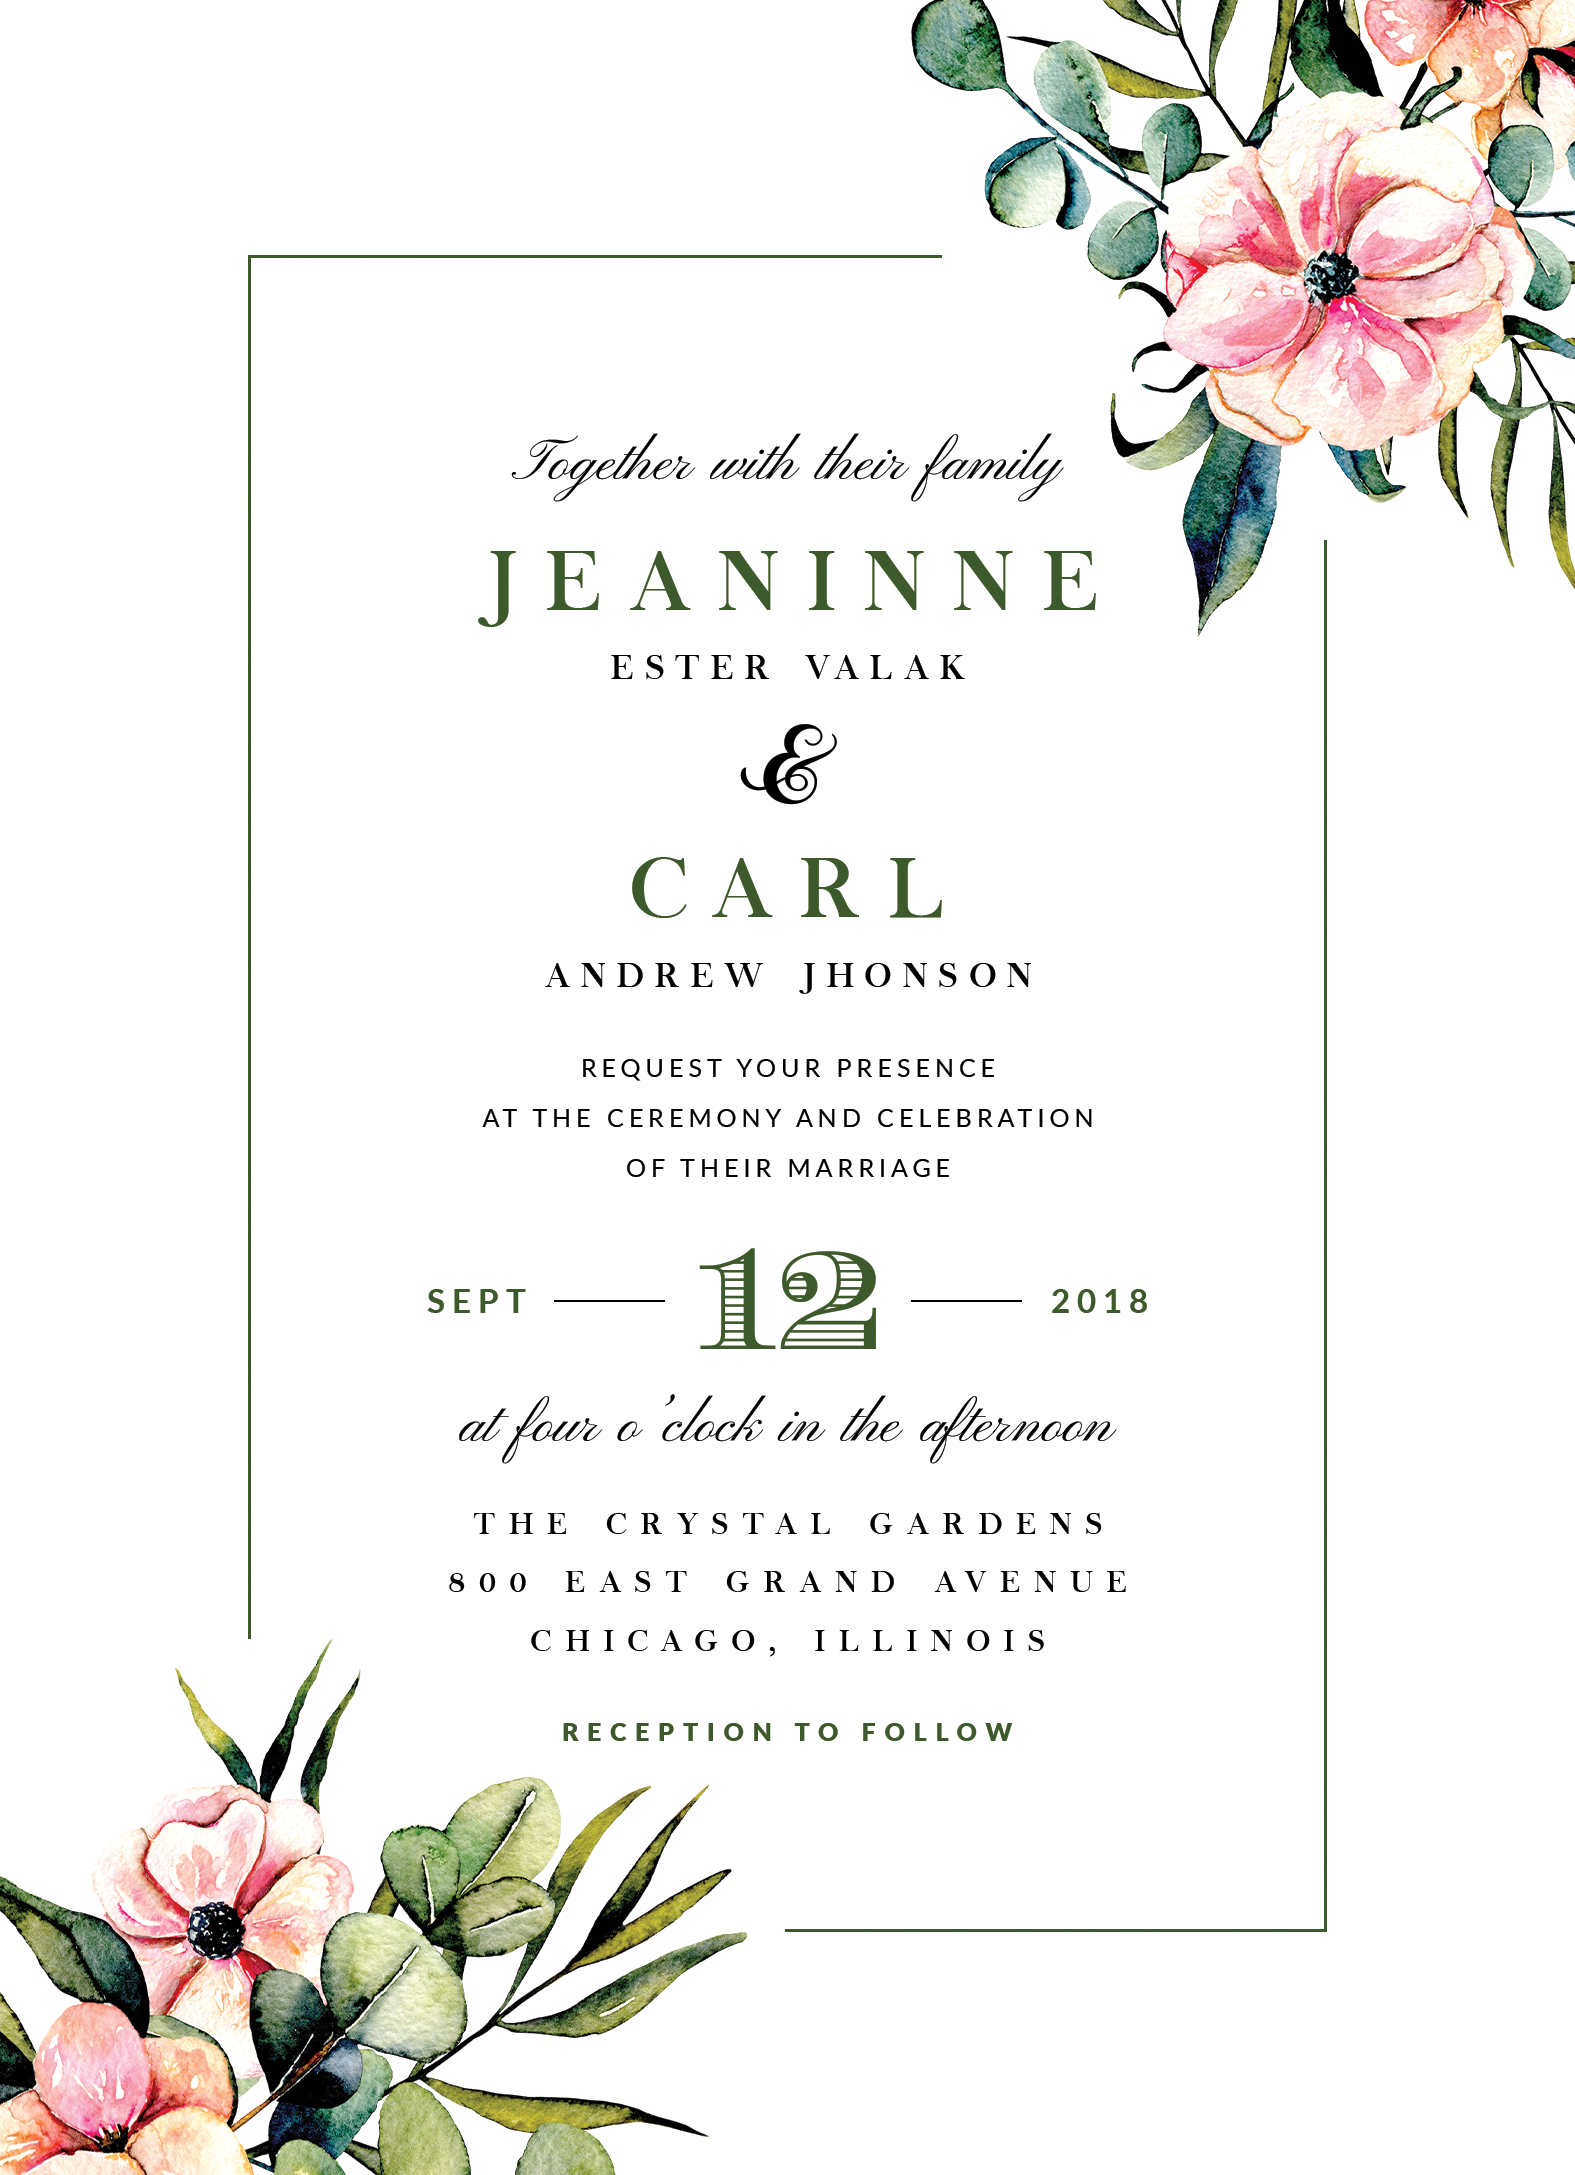 Invitation - US A7 CARD SIZE - COLOR 1_RGB.png